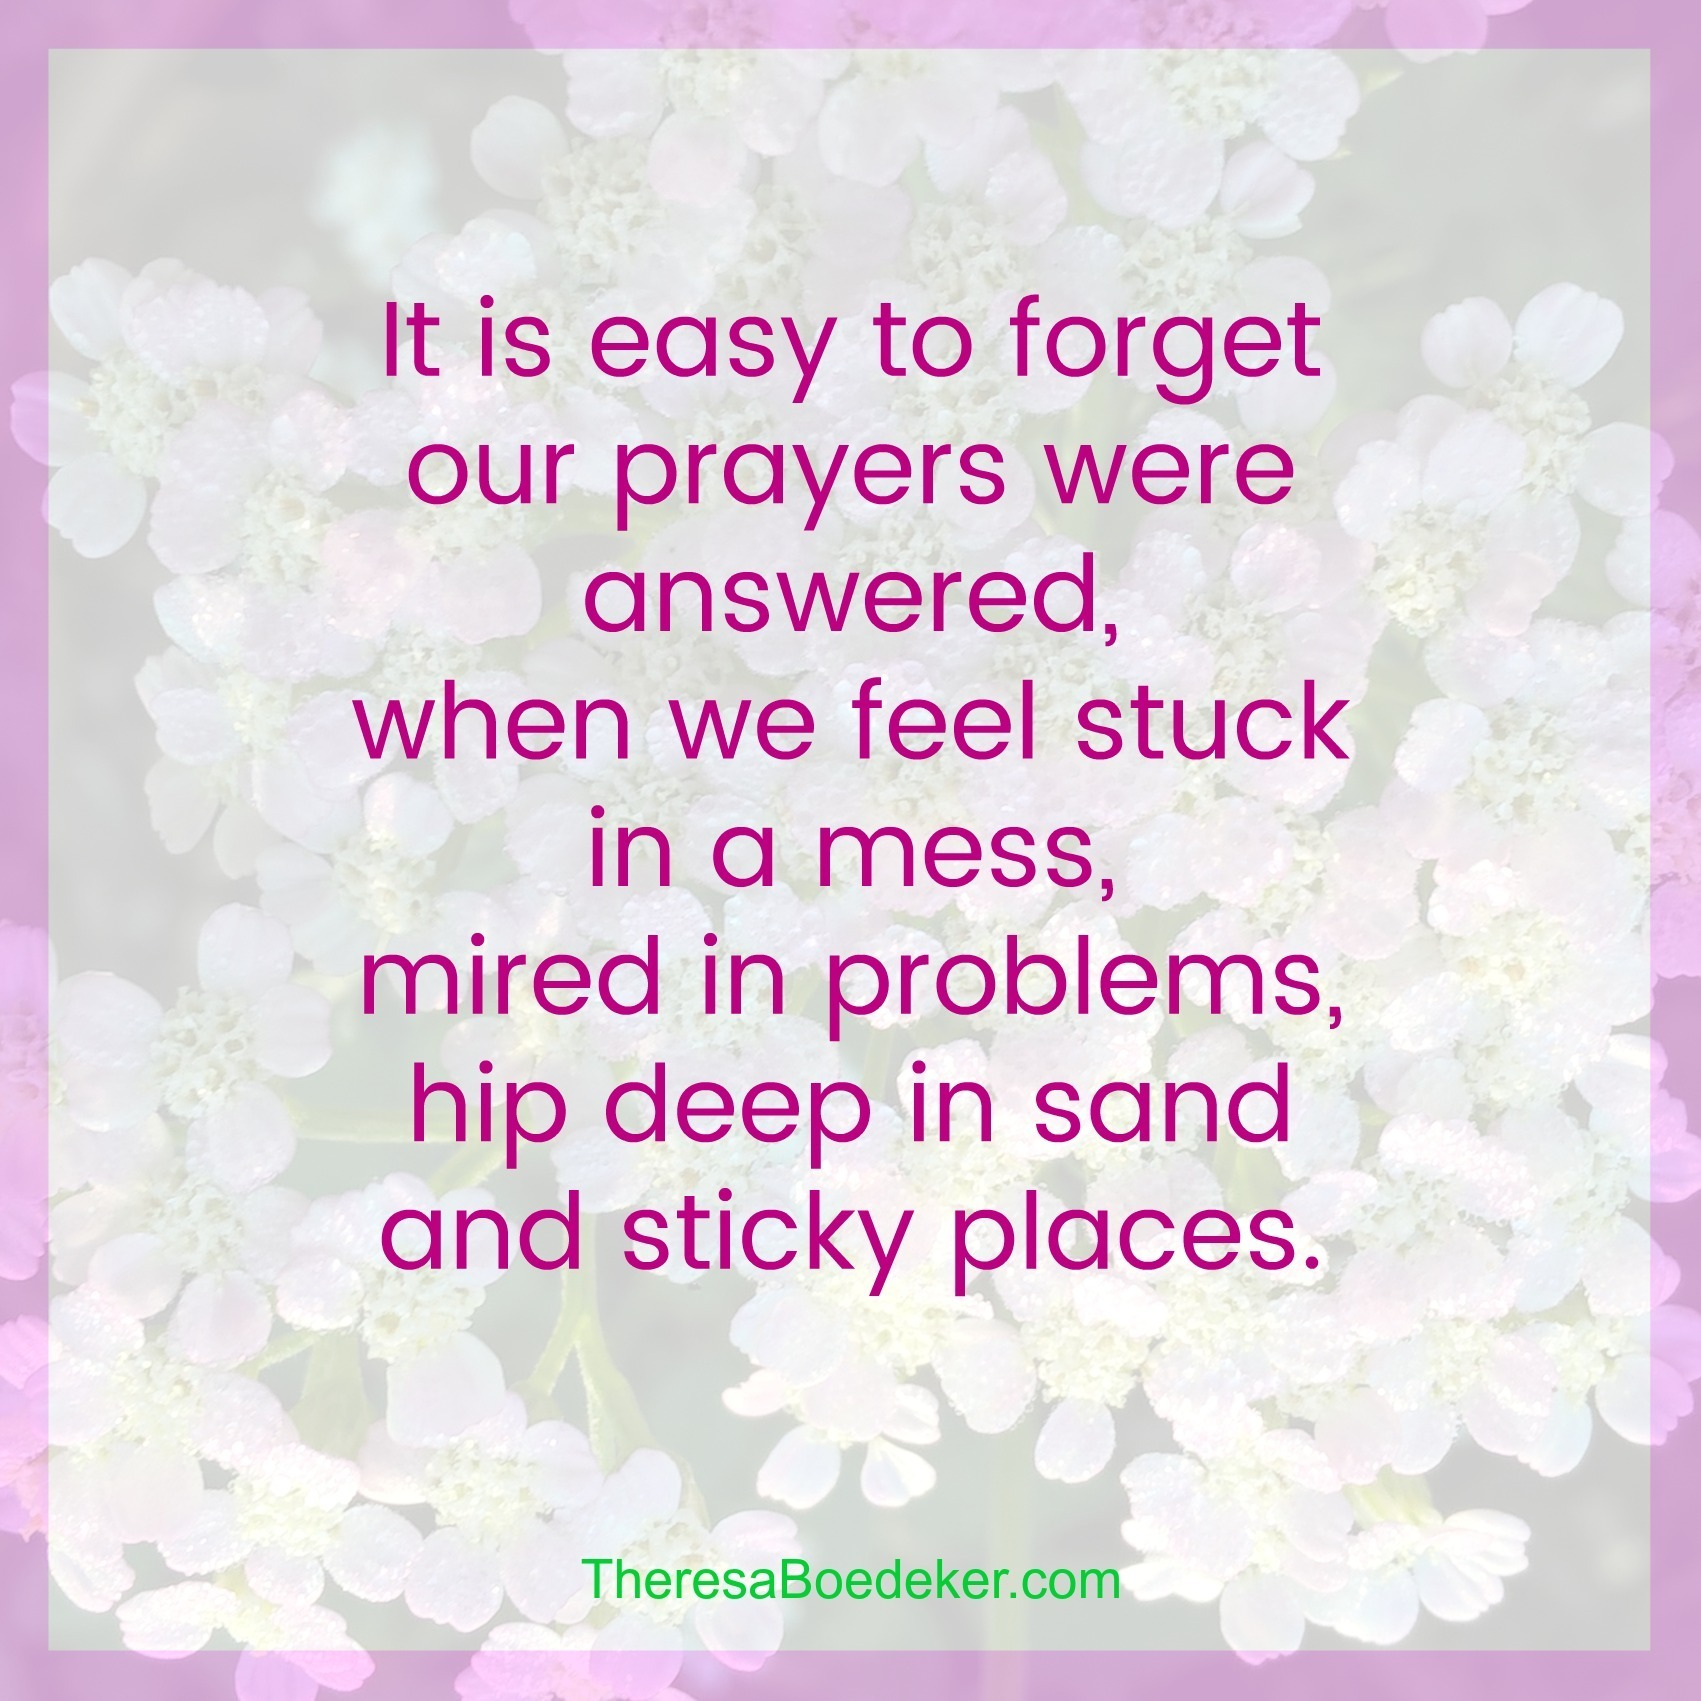 Sometimes we forget our prayers were answered, because now we feel stuck in a mess and mired in problems.